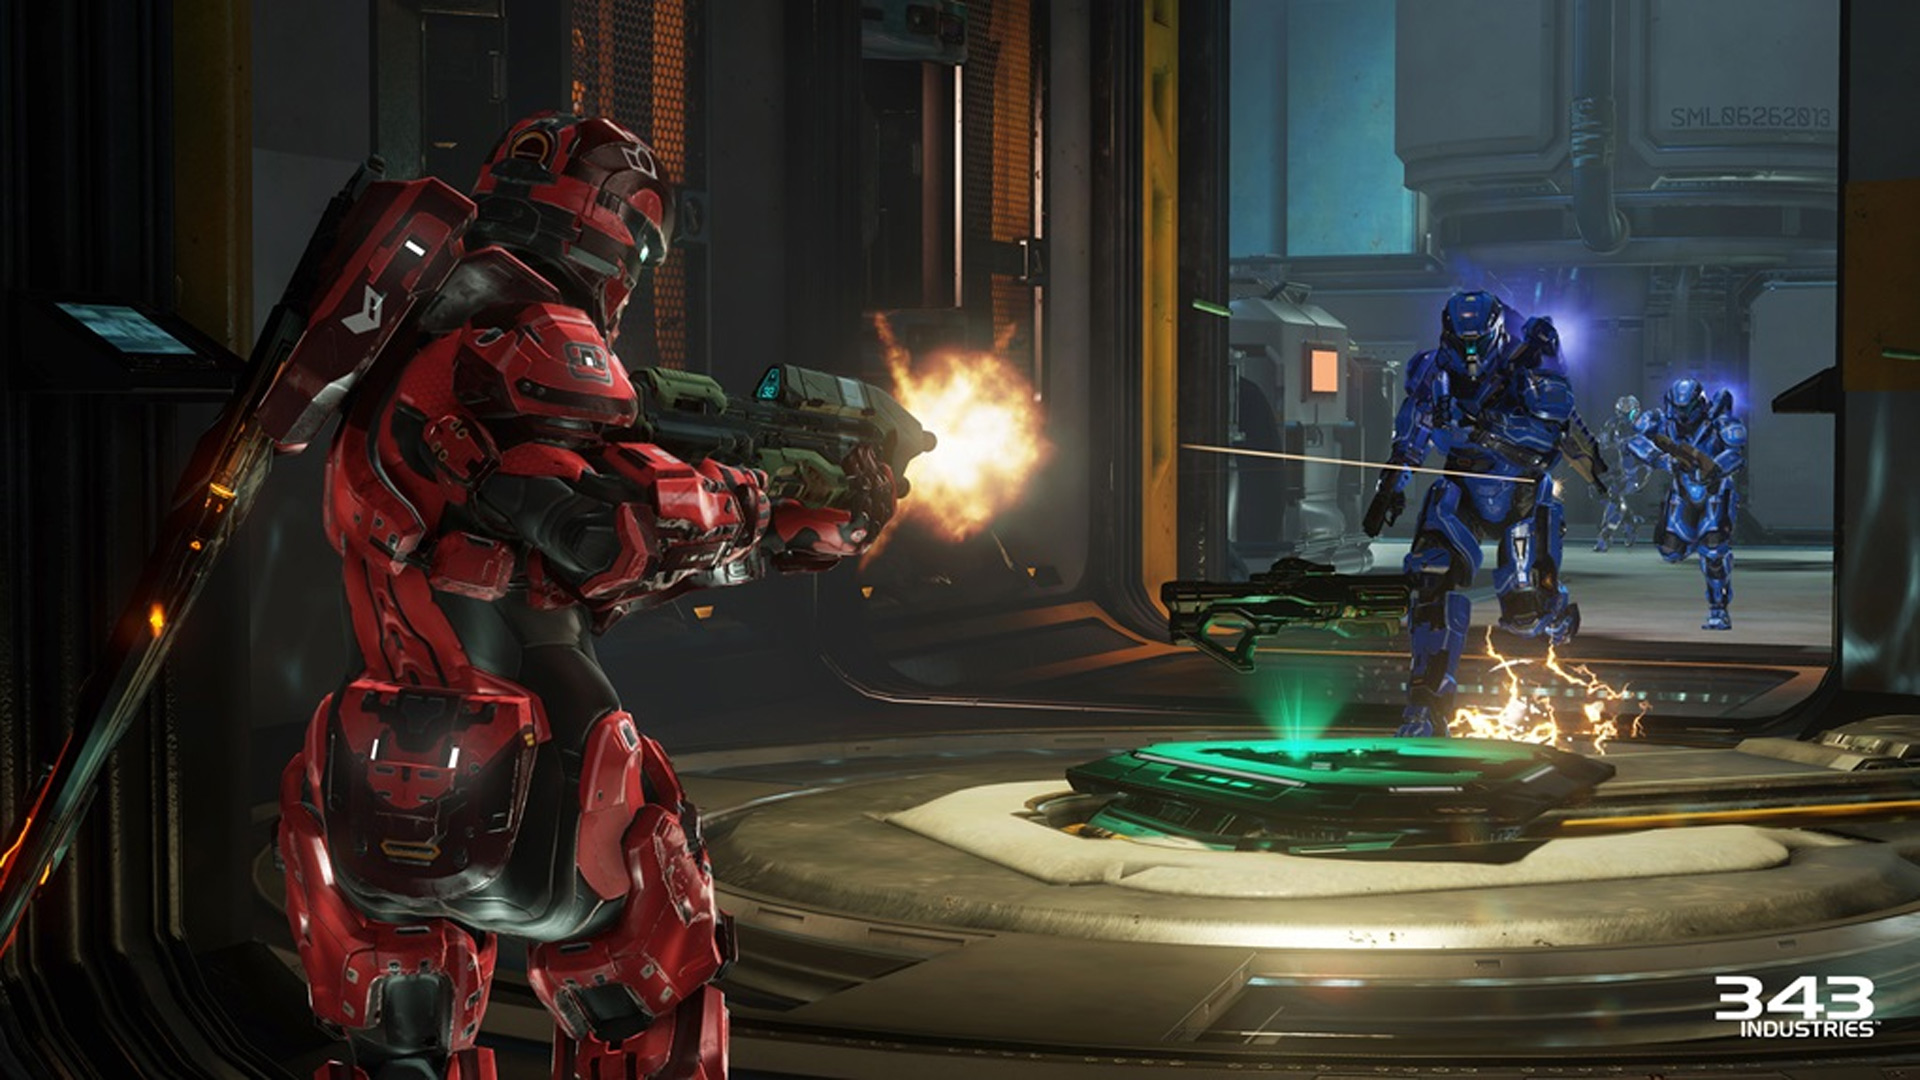 Halo 5: Guardians Warzone shown at E3 2015